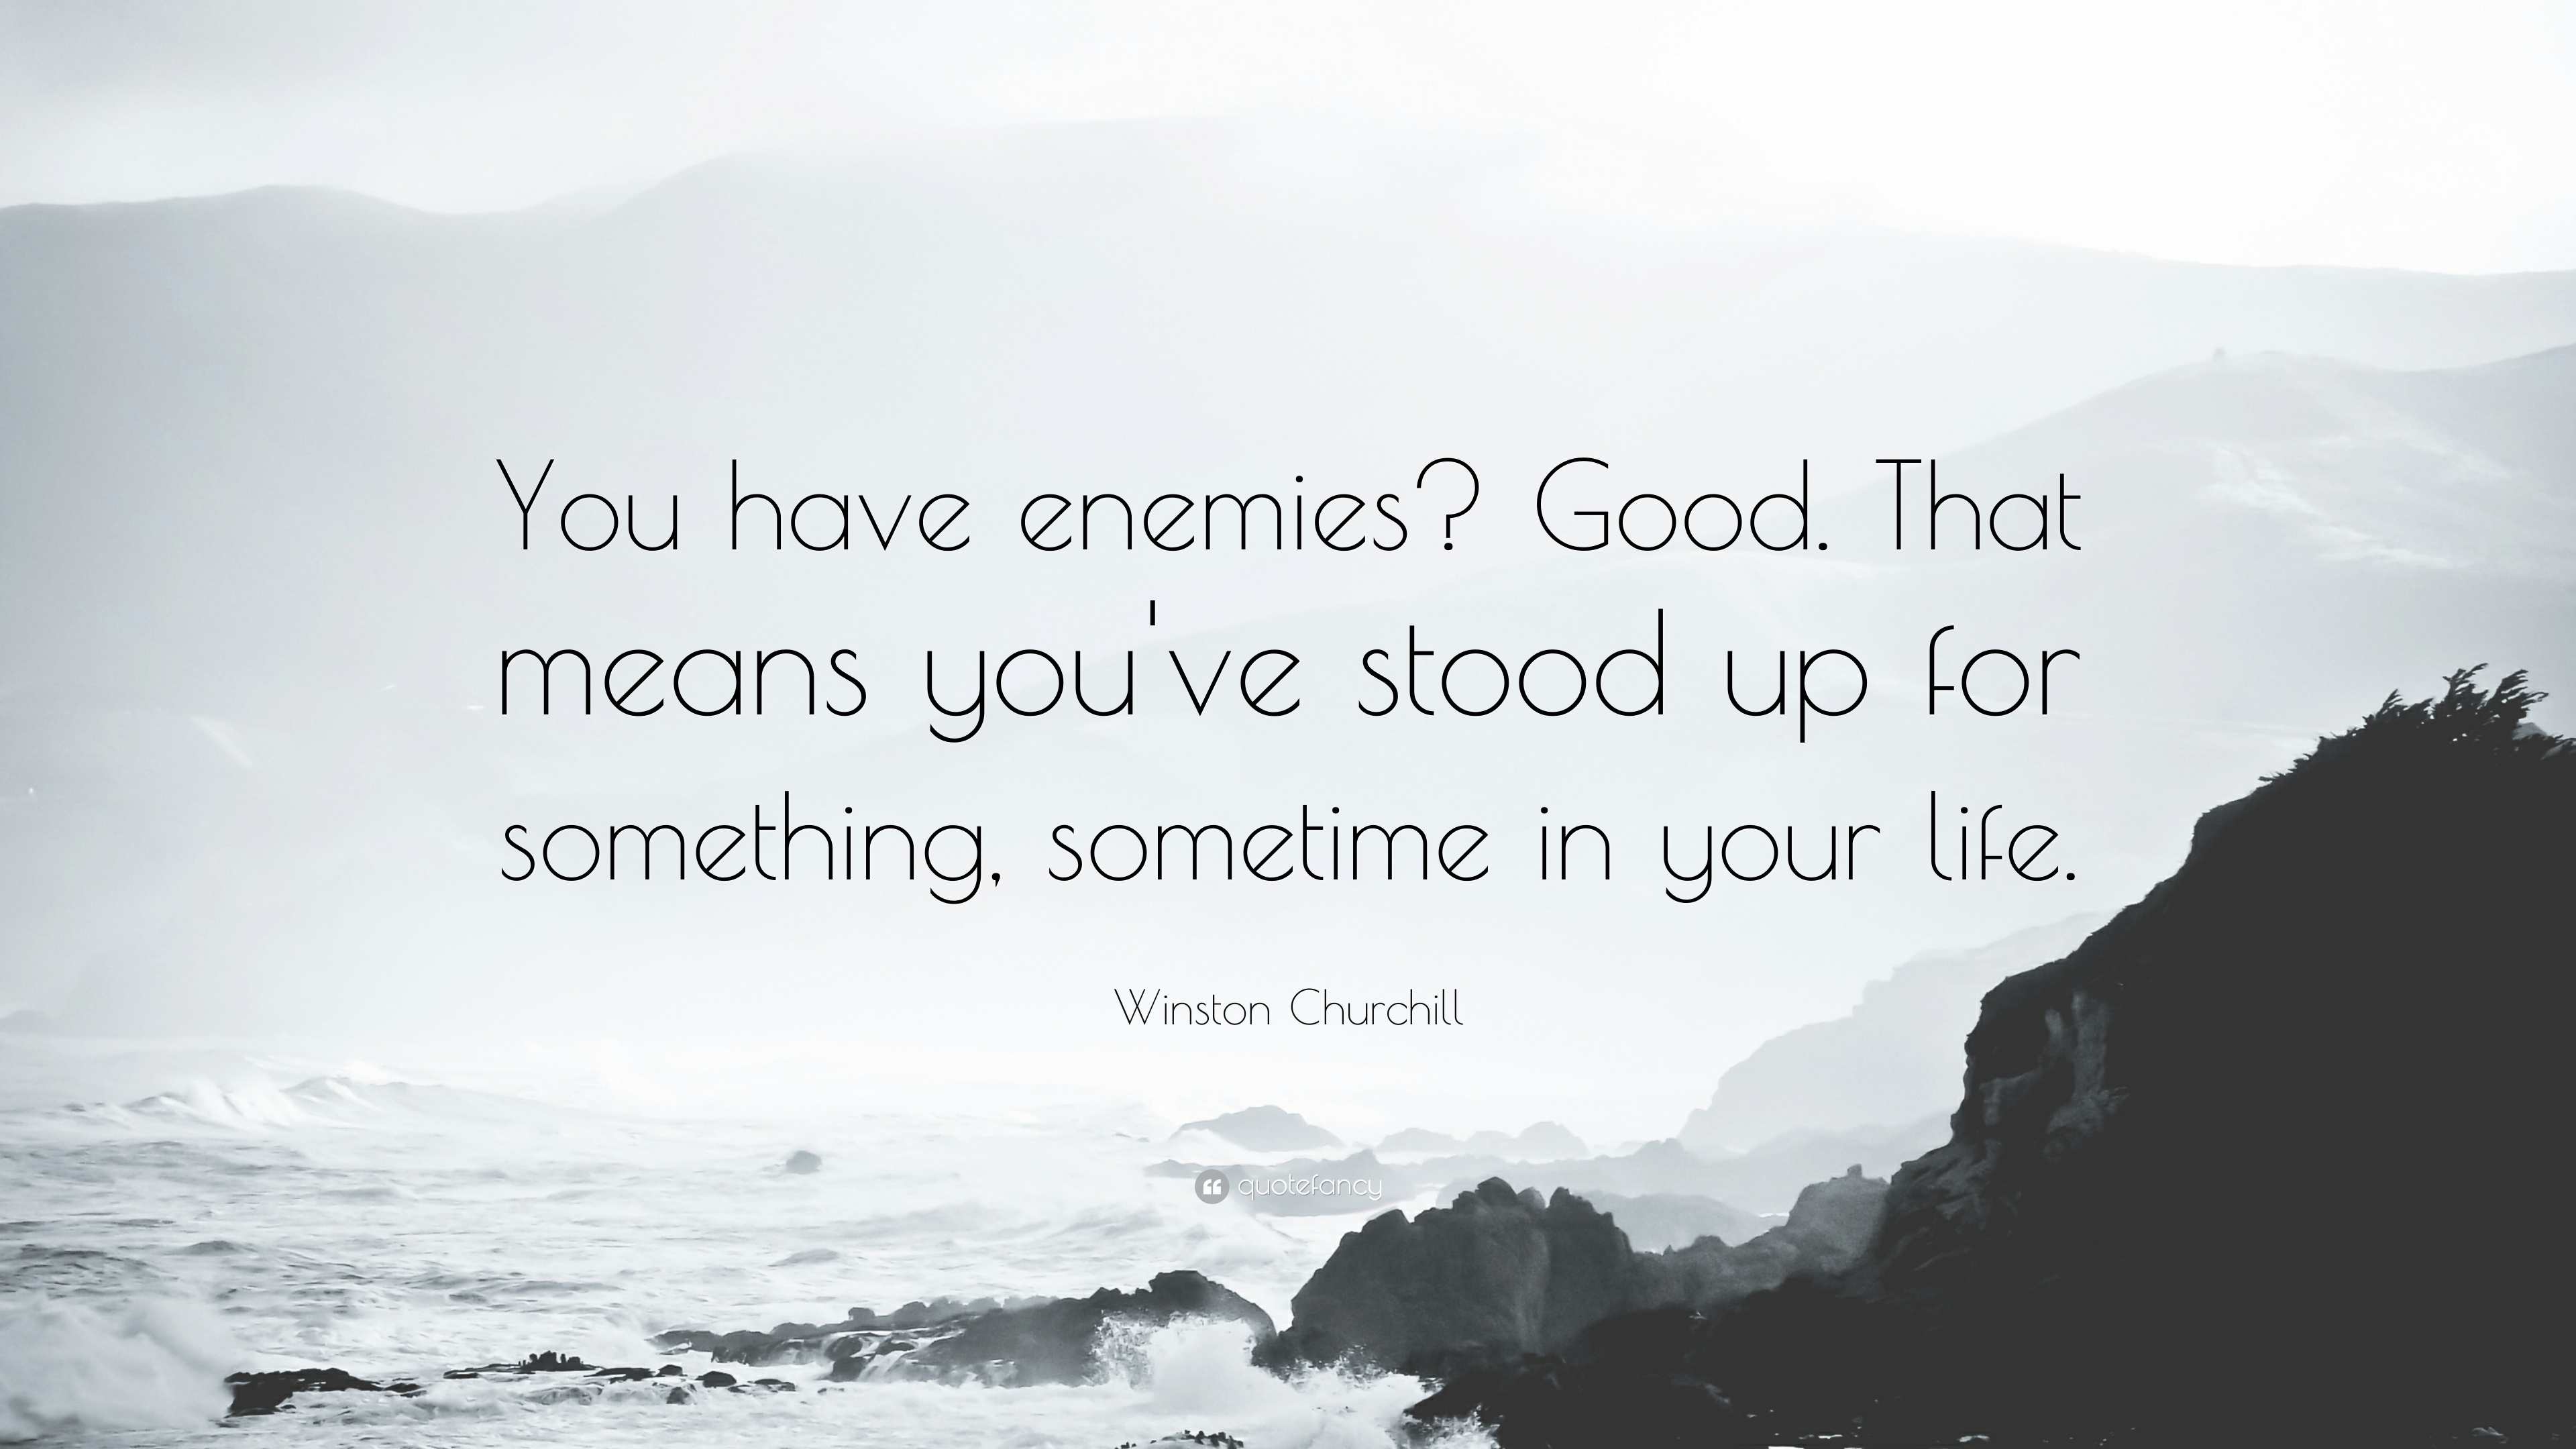 Etonnant Winston Churchill Quote: U201cYou Have Enemies? Good. That Means Youu0027ve